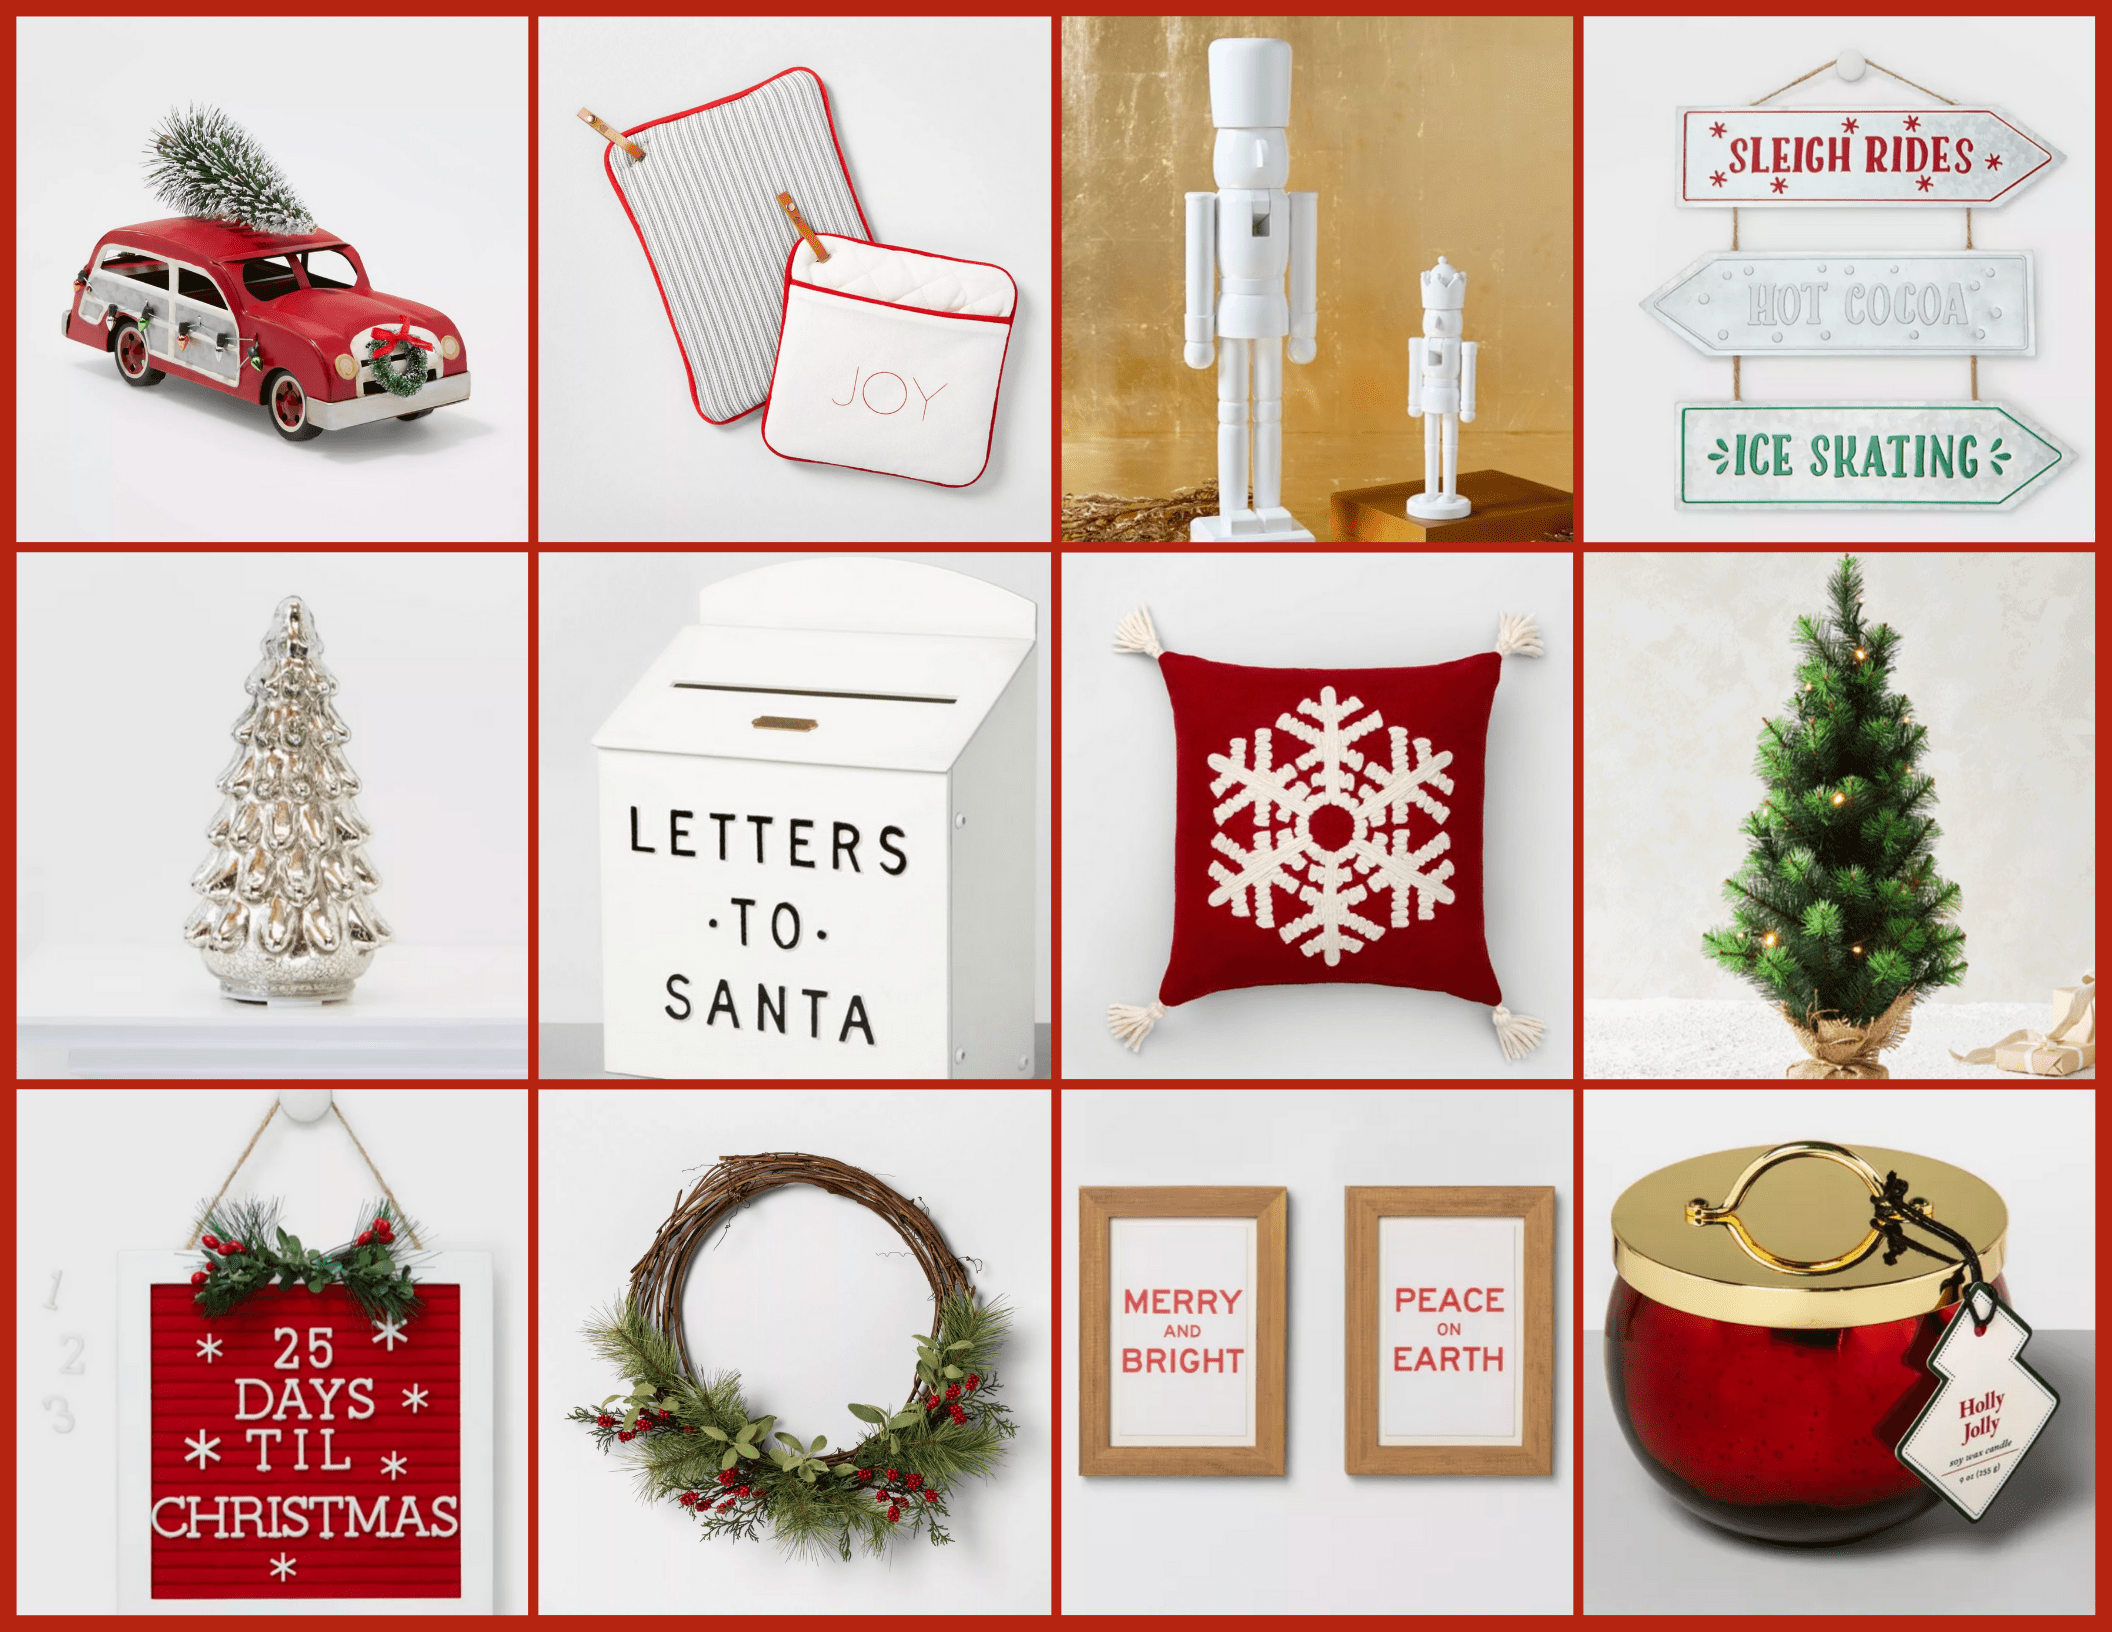 50 Holiday Decor Pieces Under $50 | Hey Its Camille Grey #holidaydecor #holiday #decor #christmas #decorating #winter